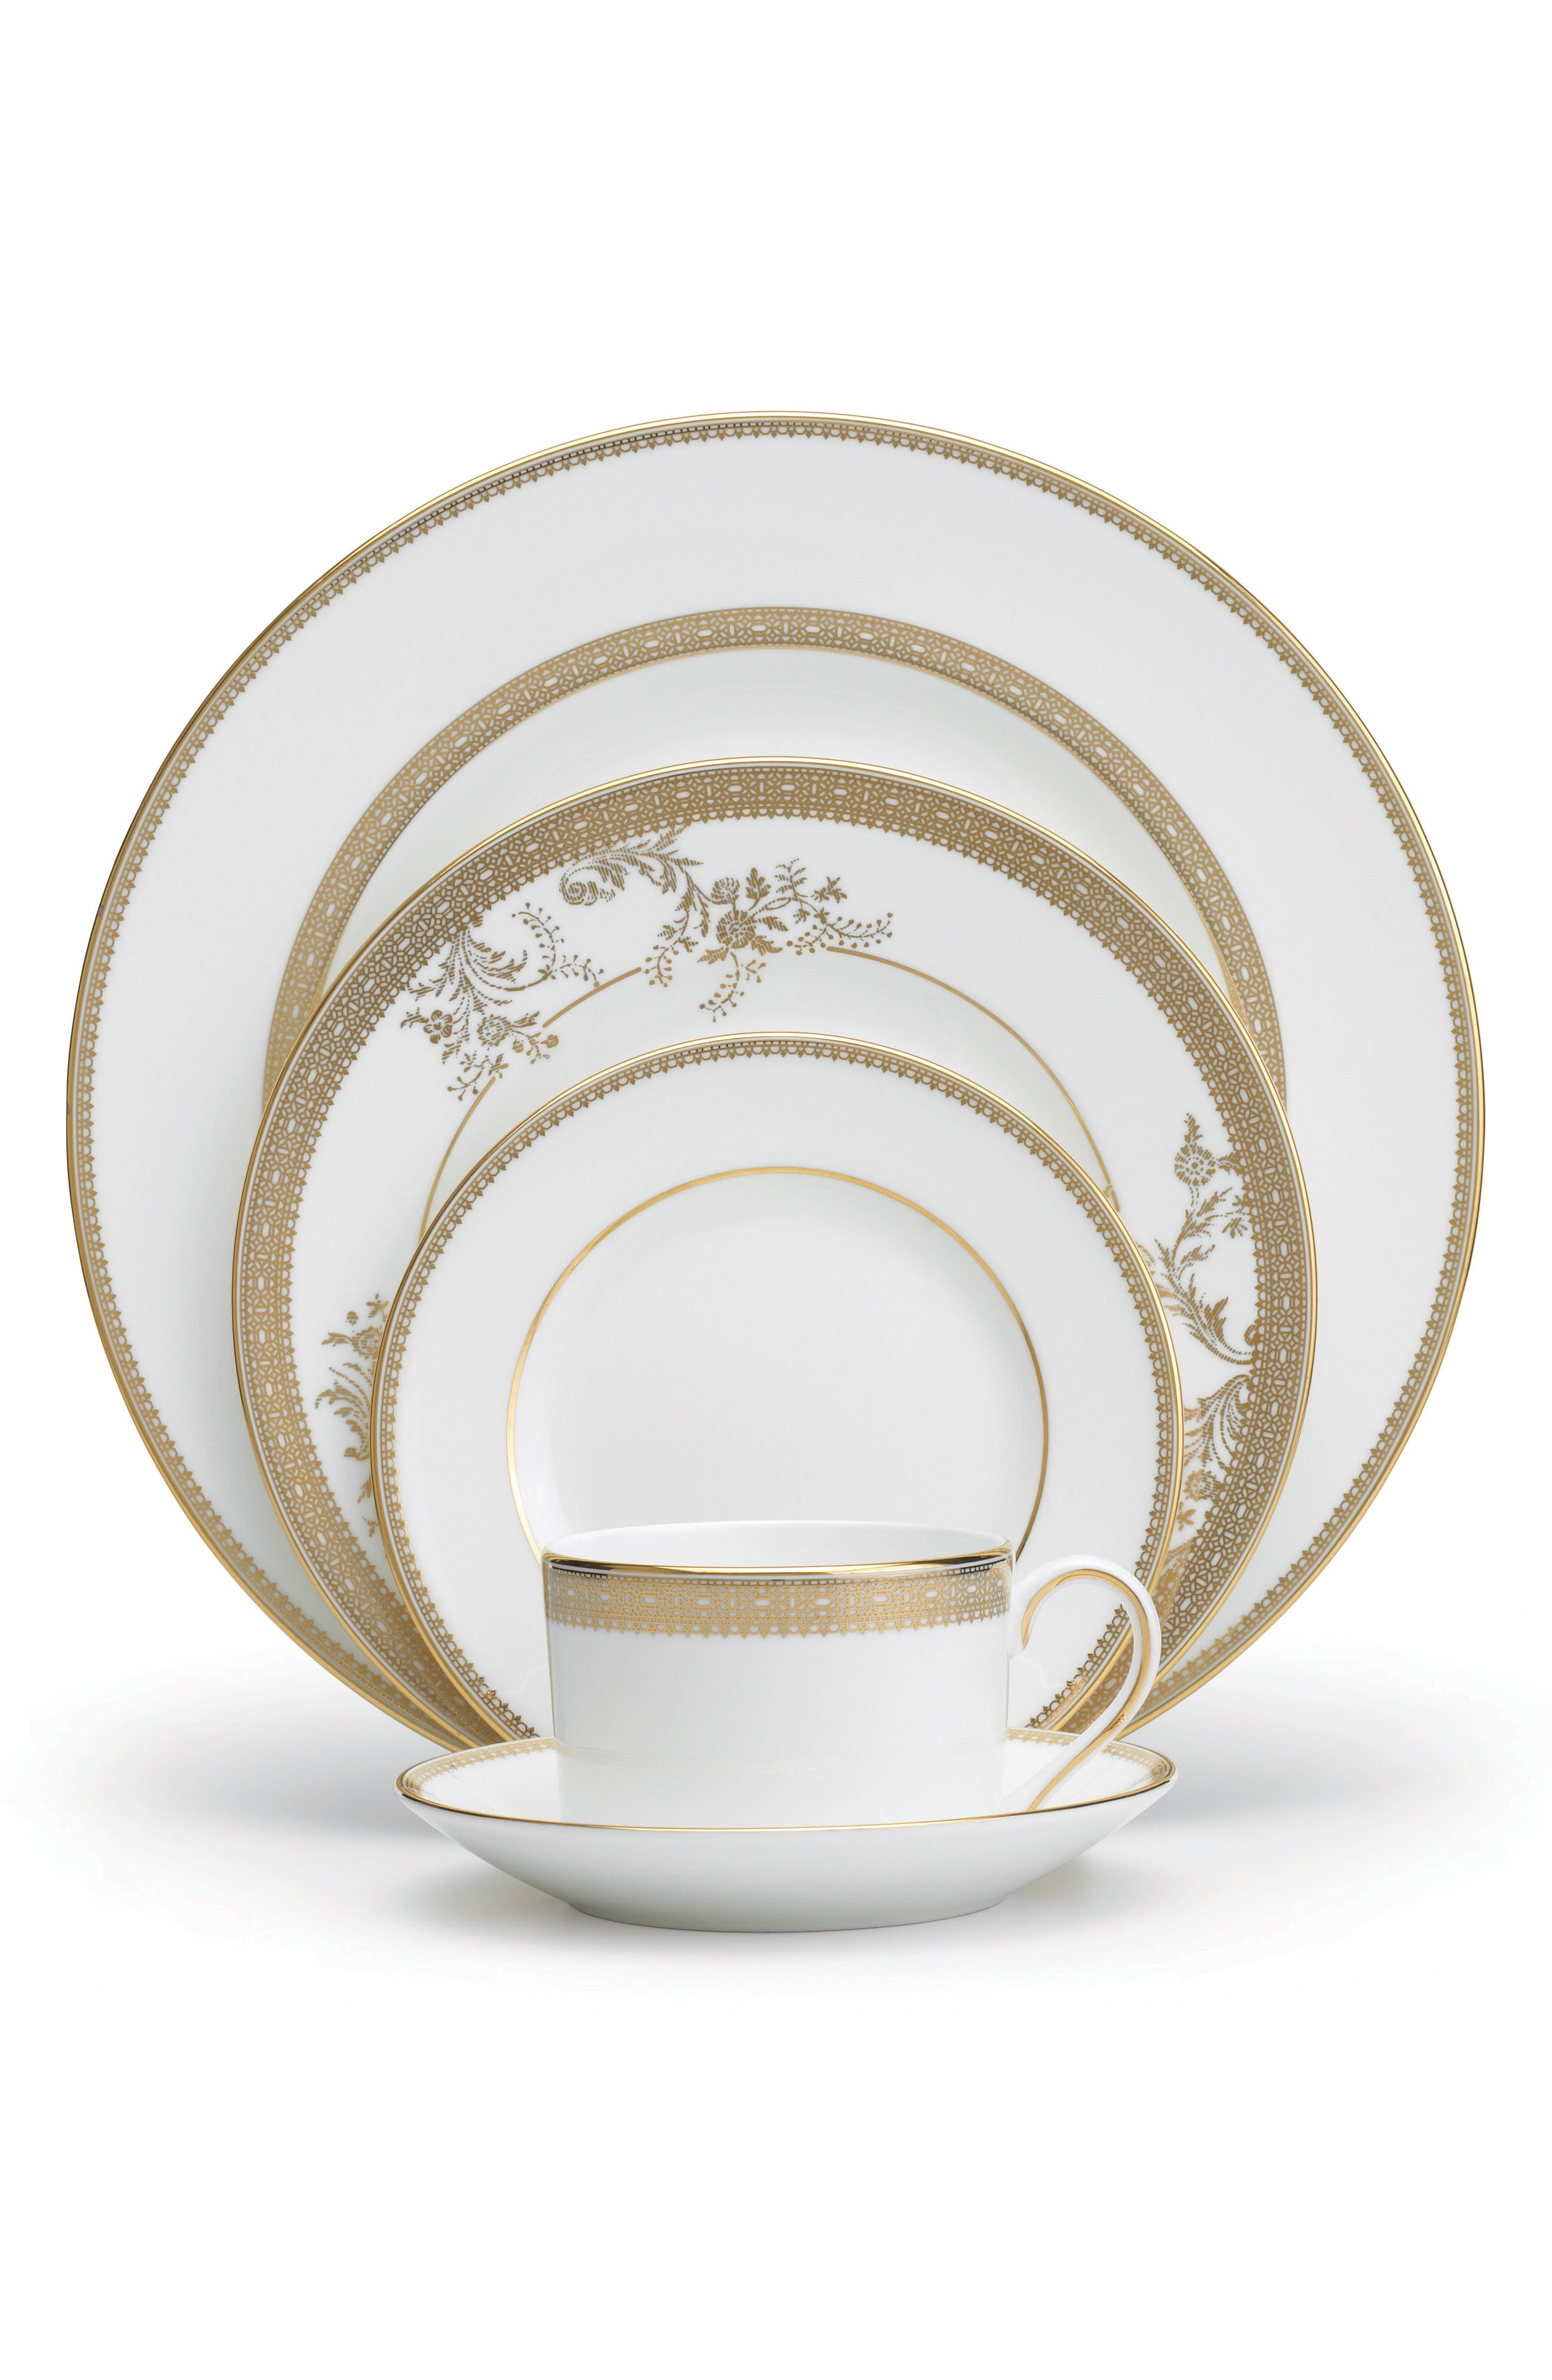 5-Piece Bone China Dinnerware Place Setting,                         Main,                         color,